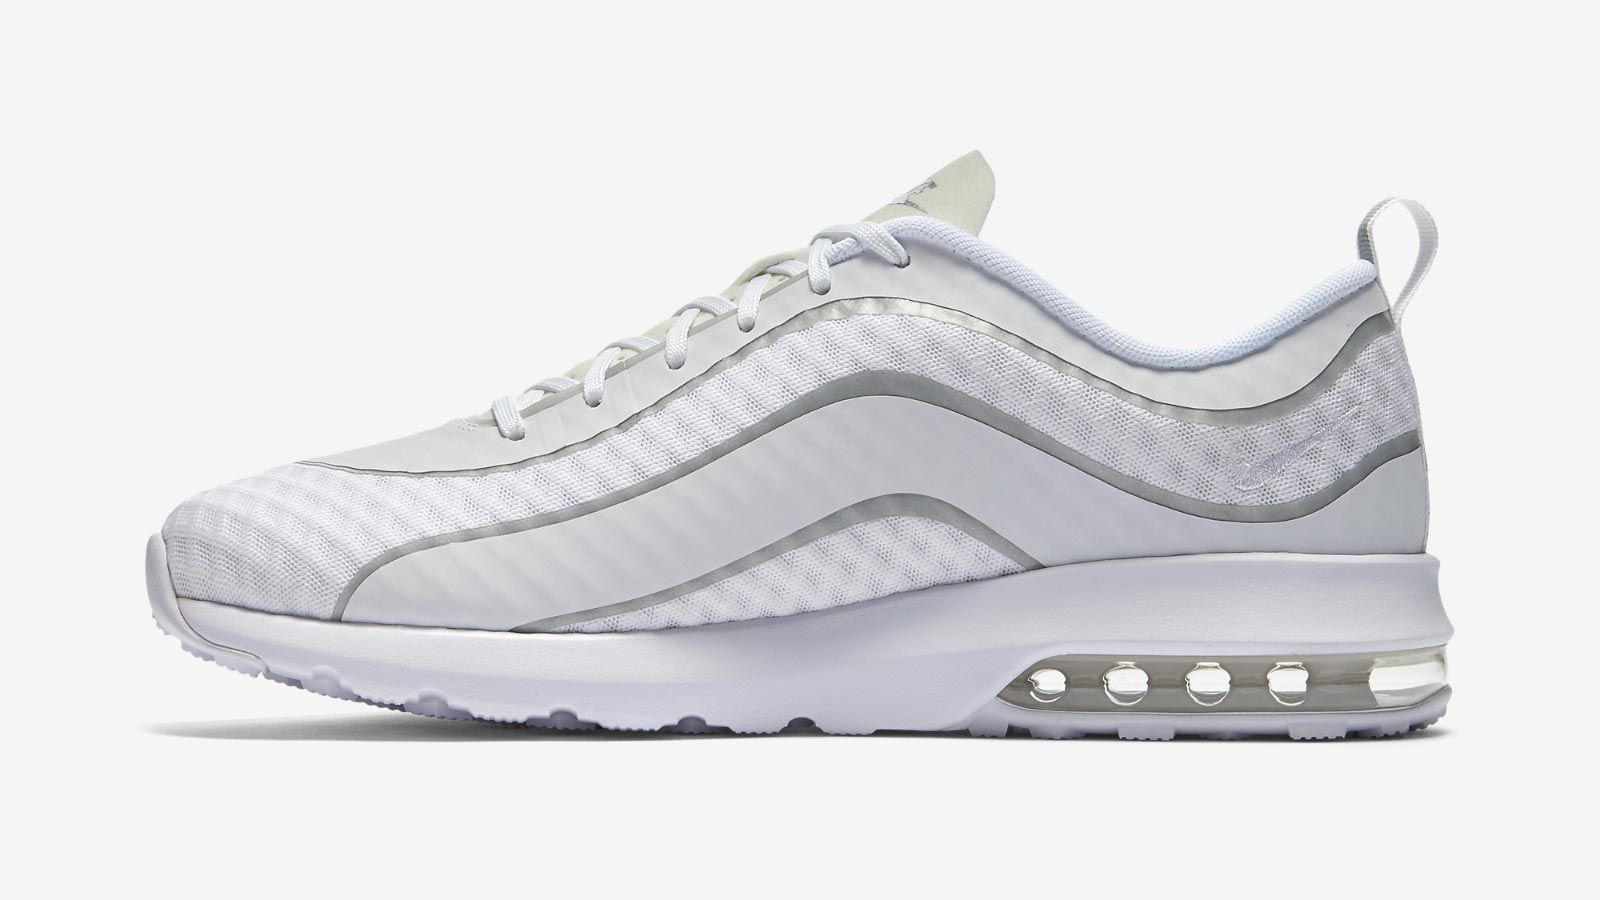 The Nike Air Max Mercurial R9 has received a classy whiteout